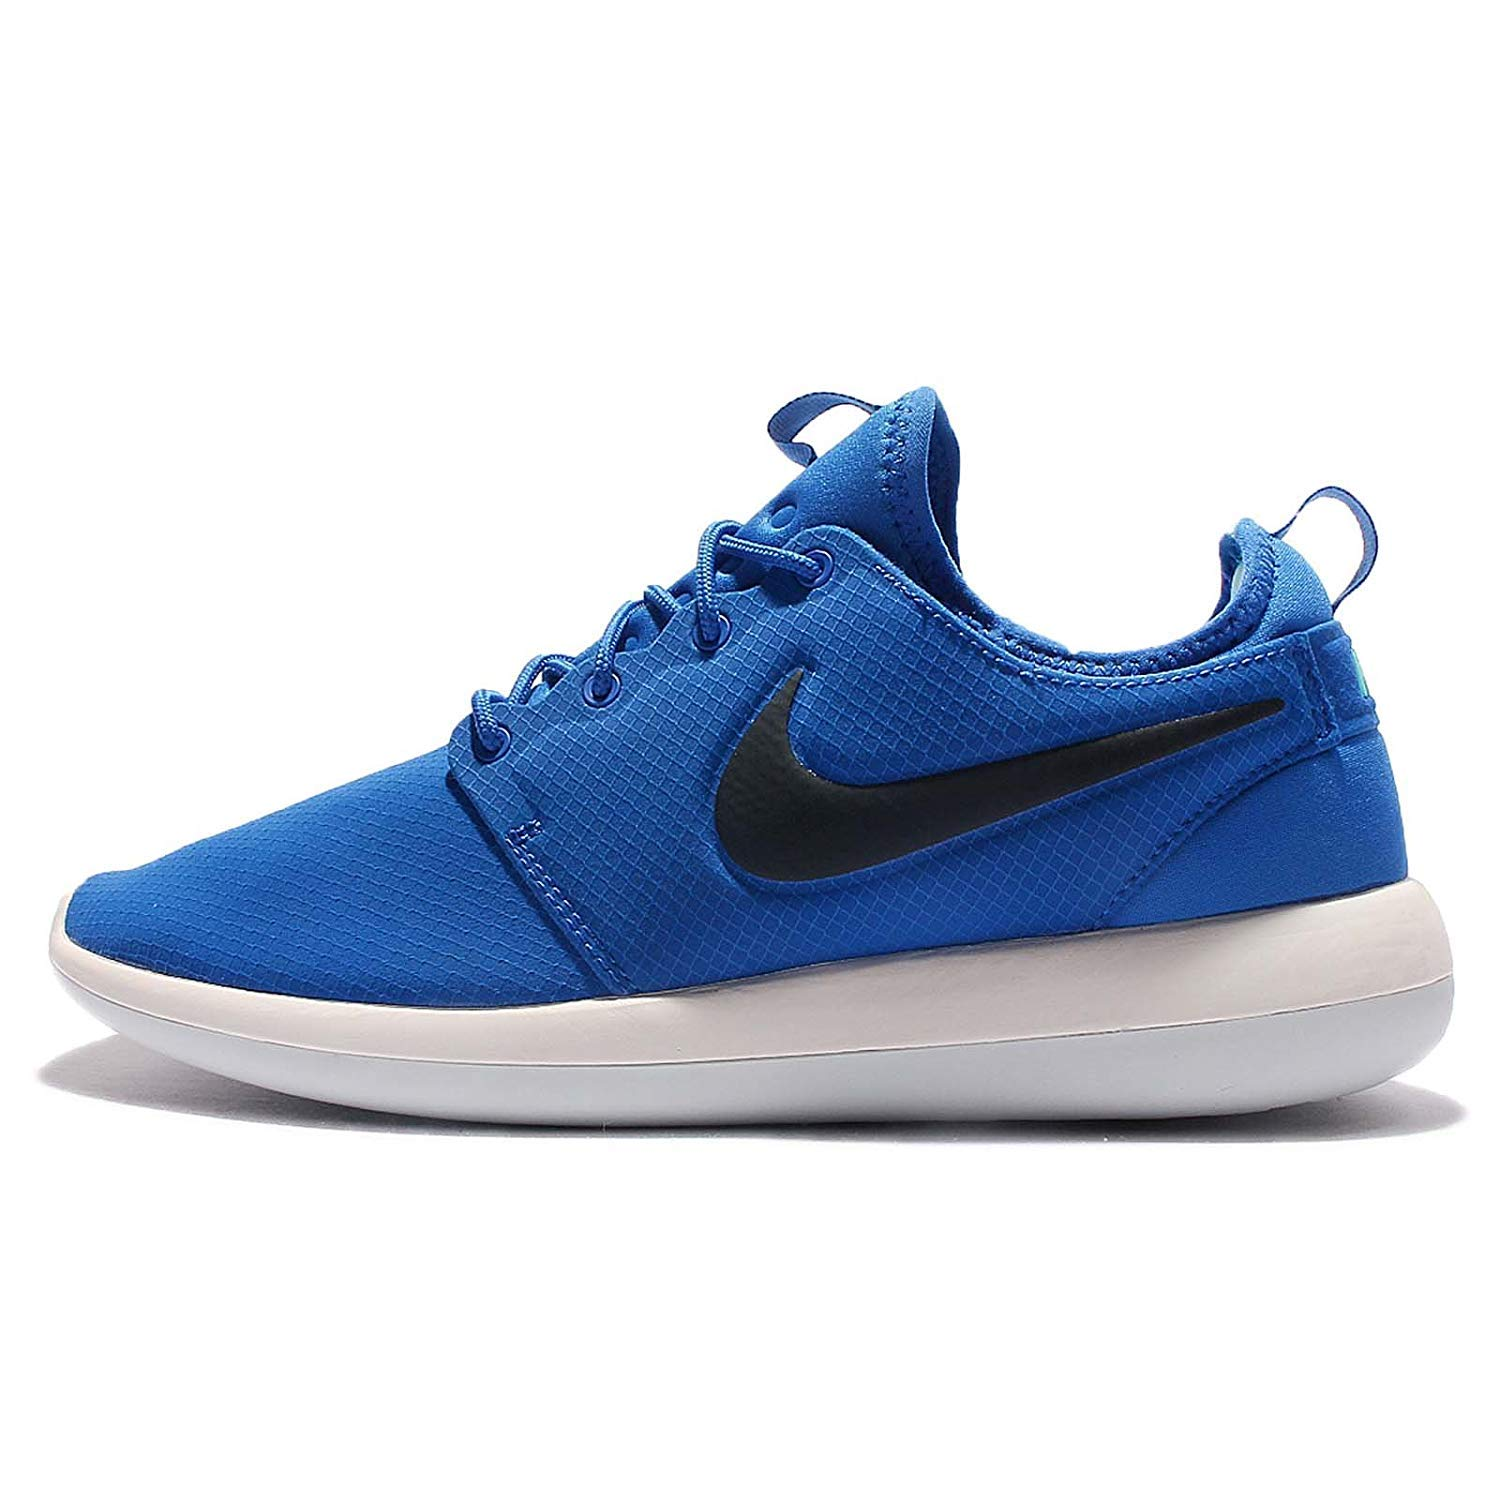 size 40 d46a8 165f1 Nike Men s Roshe Two Running Shoes Red  Amazon.co.uk  Shoes   Bags